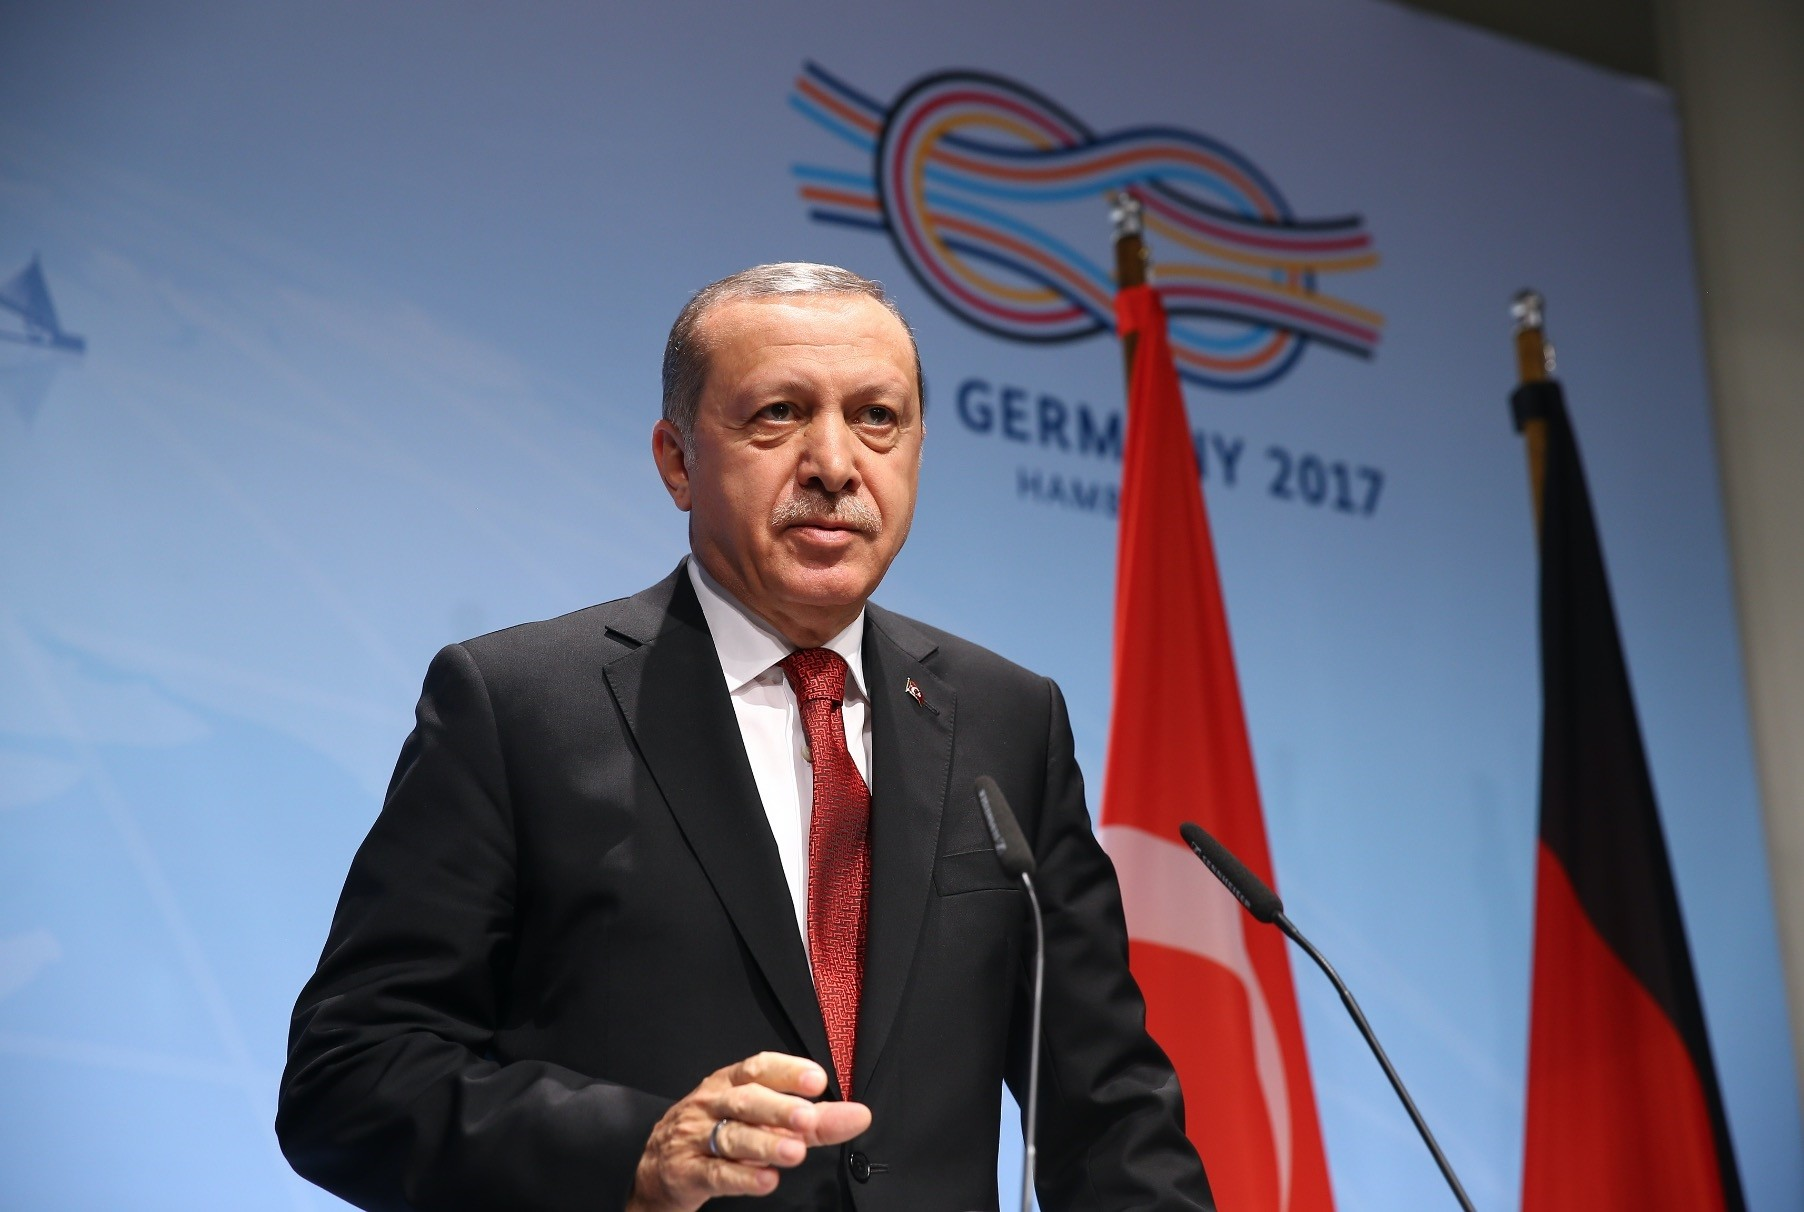 Erdou011fan said, as part of its humanitarian efforts in Africa, Turkey will continue work in Somalia, despite repeated threats from terrorist groups.